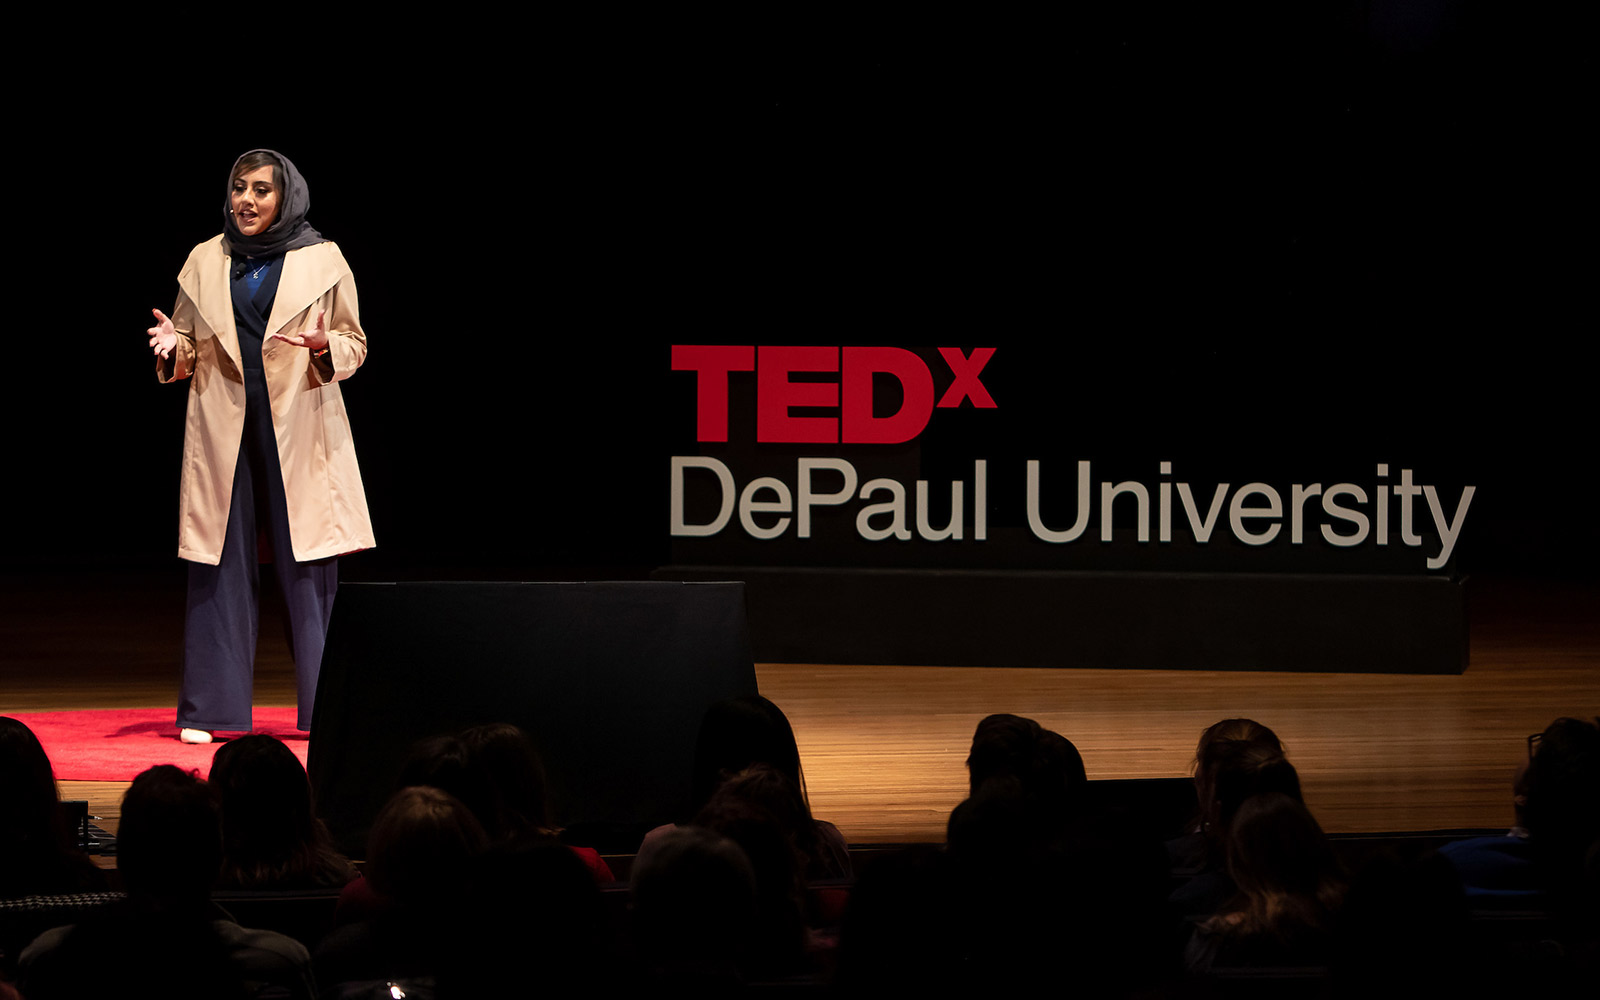 A speaker at TEDxDePaul University in 2019